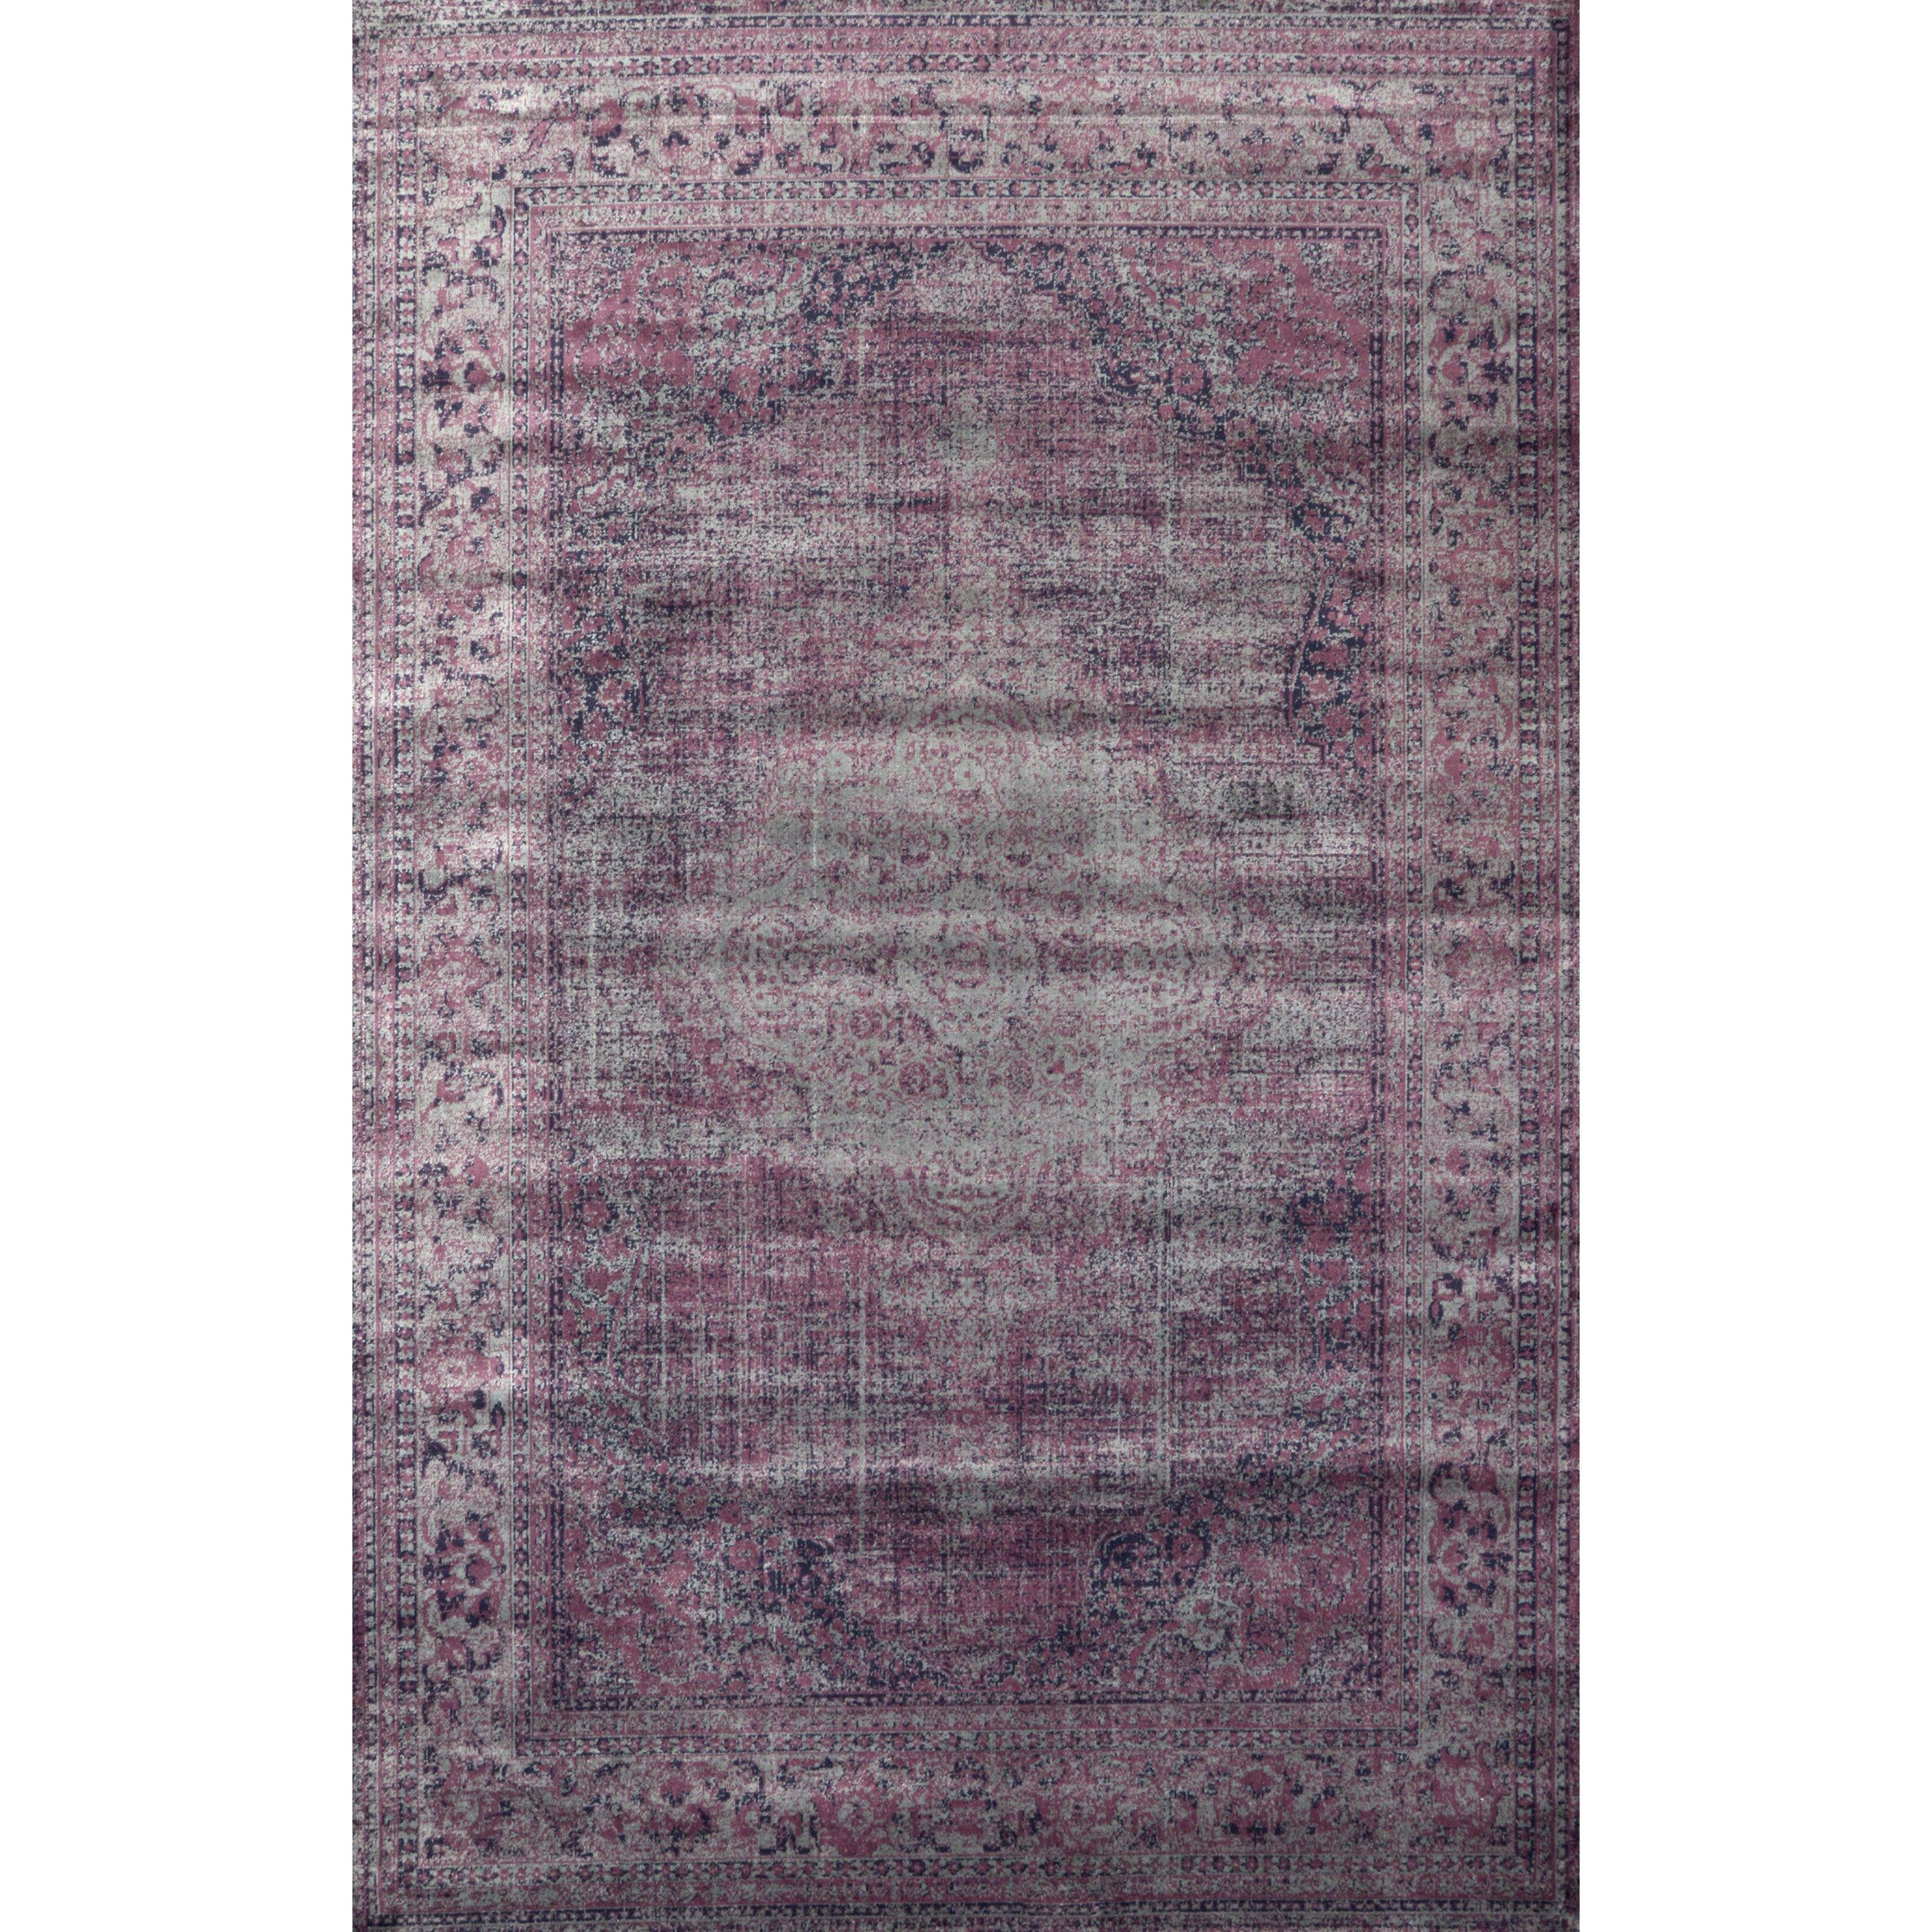 This Vintage Style Viscose Rug Brings A Classic Look To Your Contemporary  Living Space.